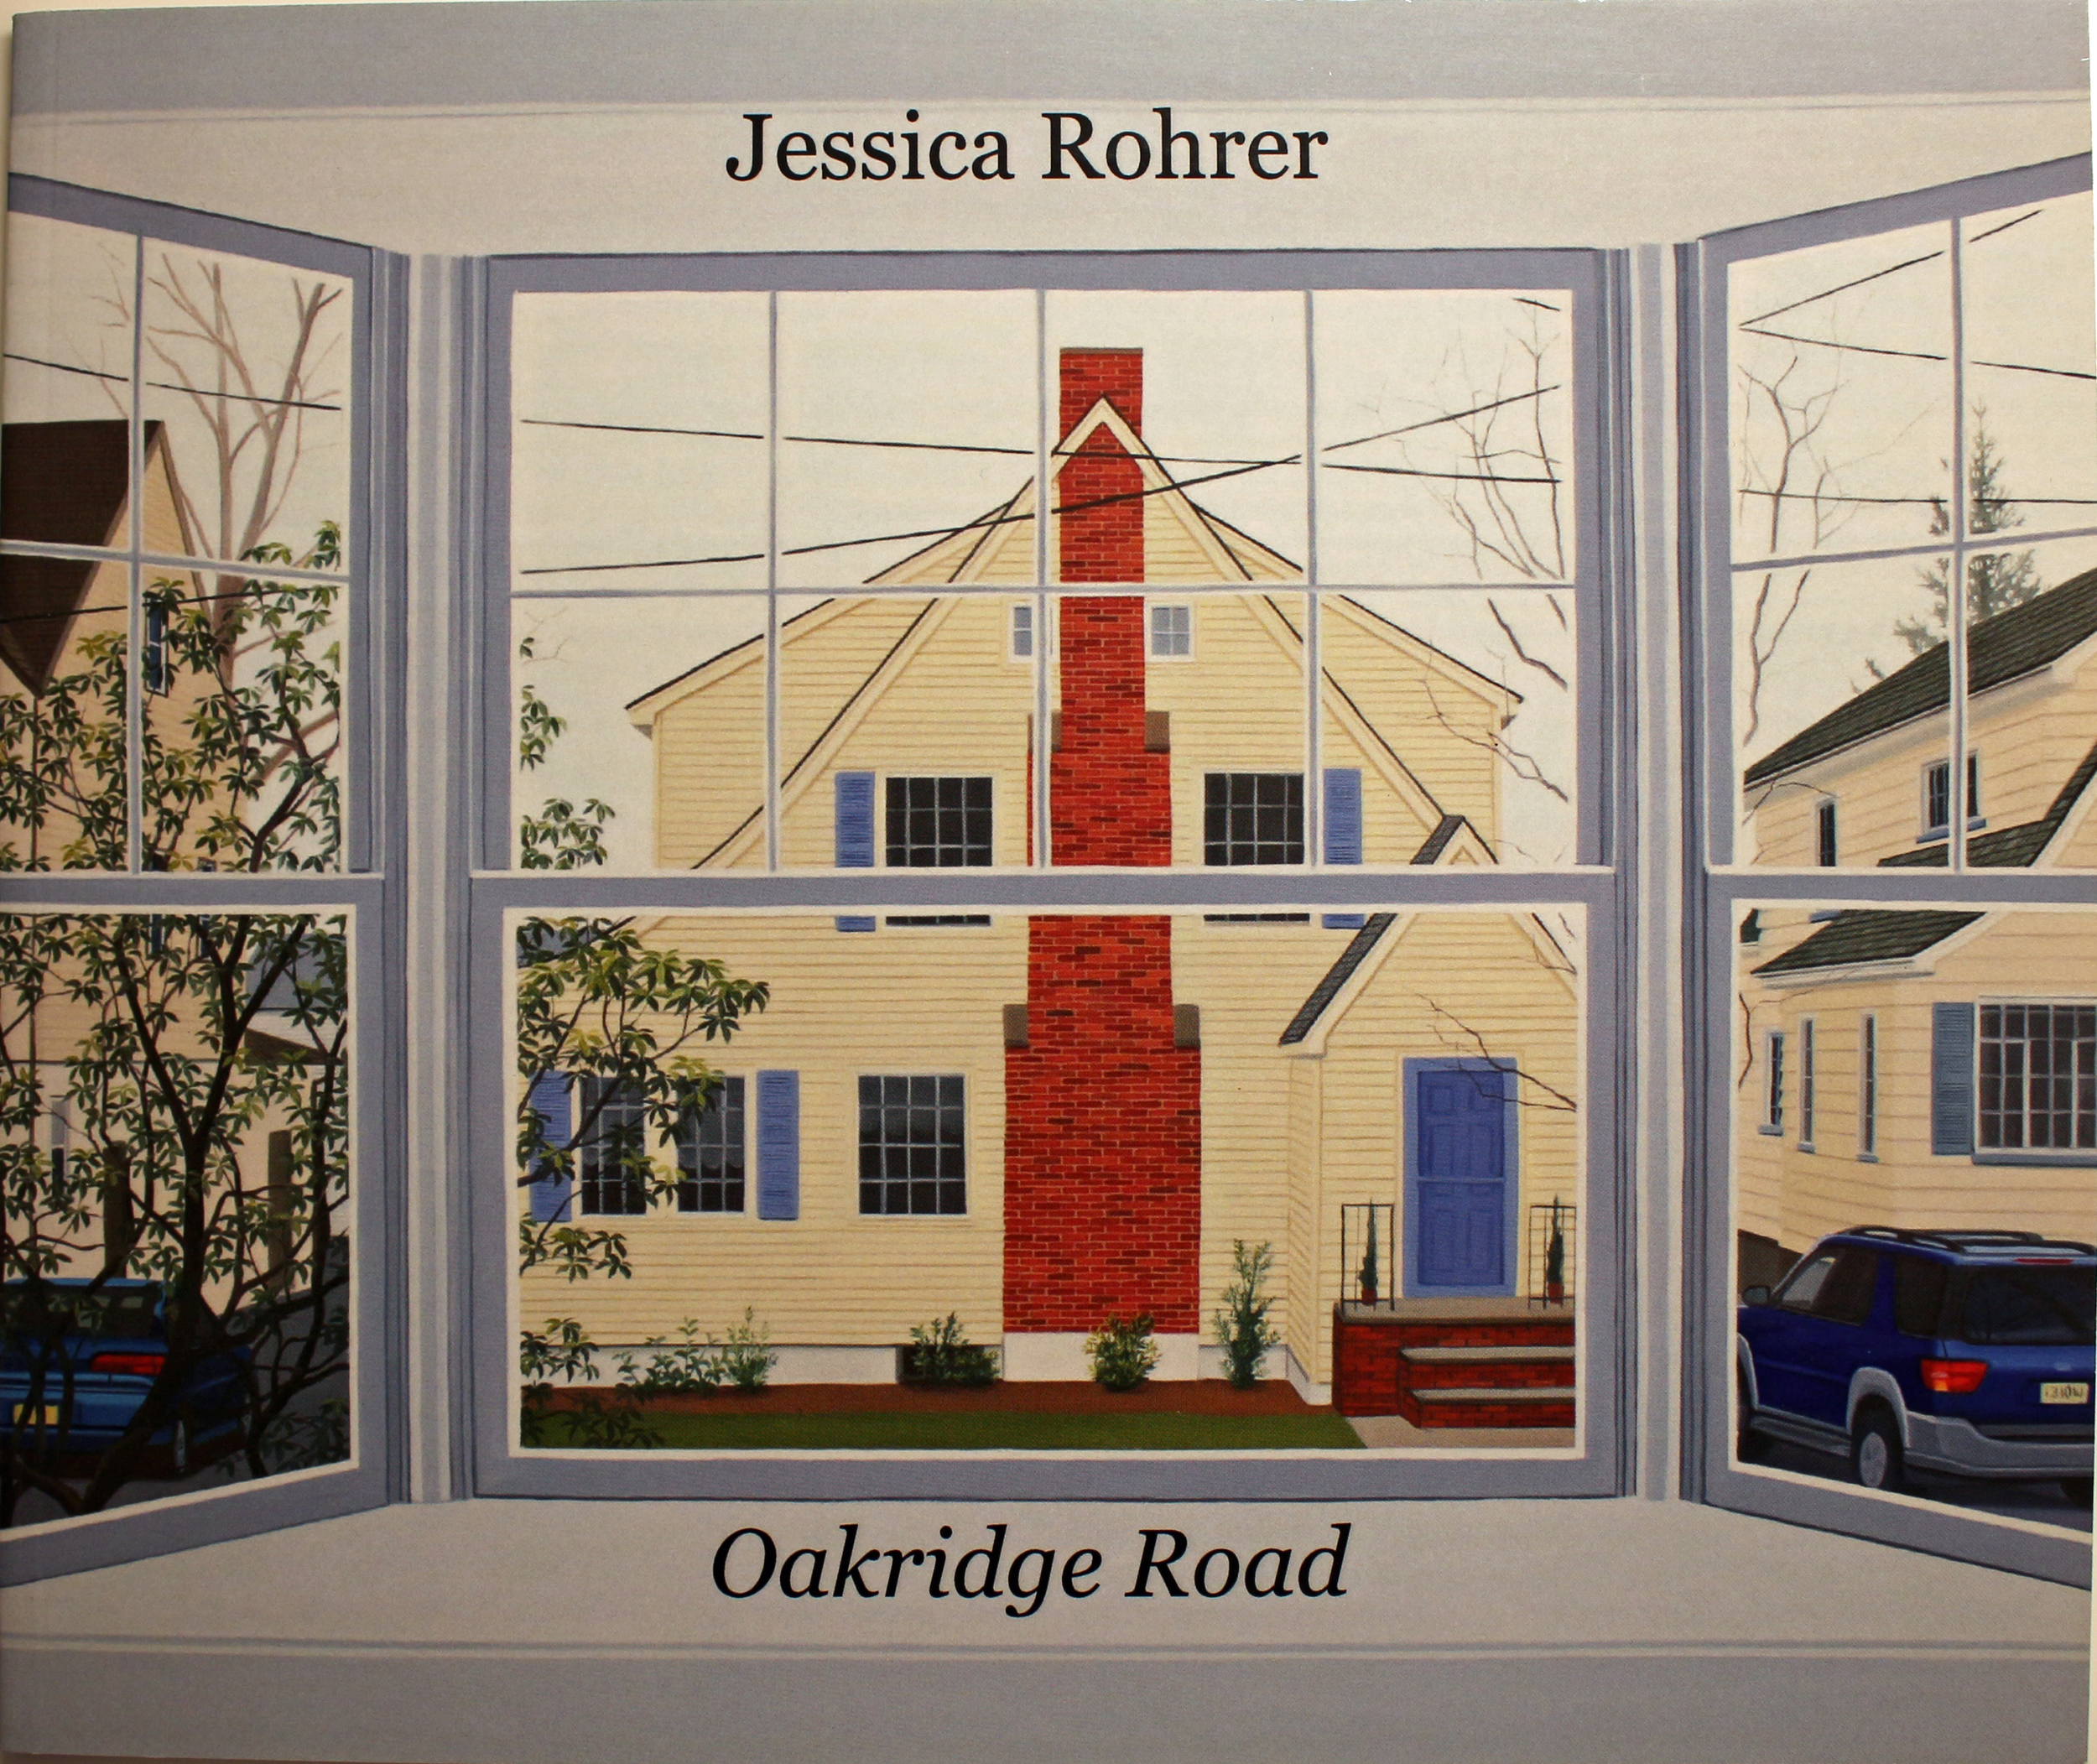 Oakridge Road  Full Color, 46 Pages  Softcover $33.11    Purchase